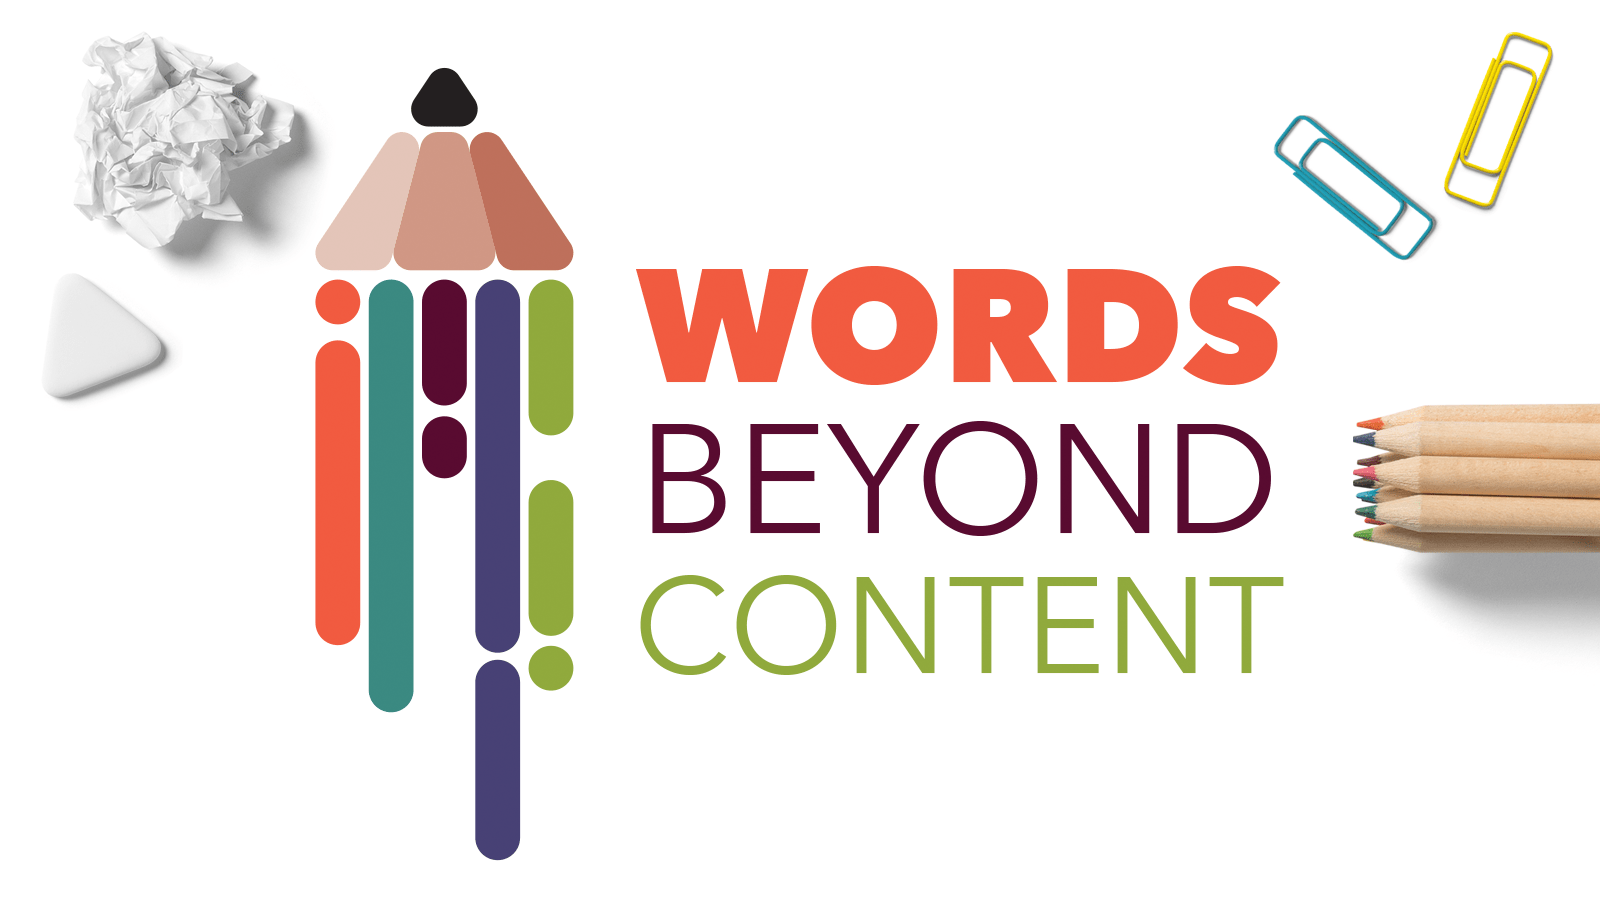 Welcome to the new Words Beyond Content!